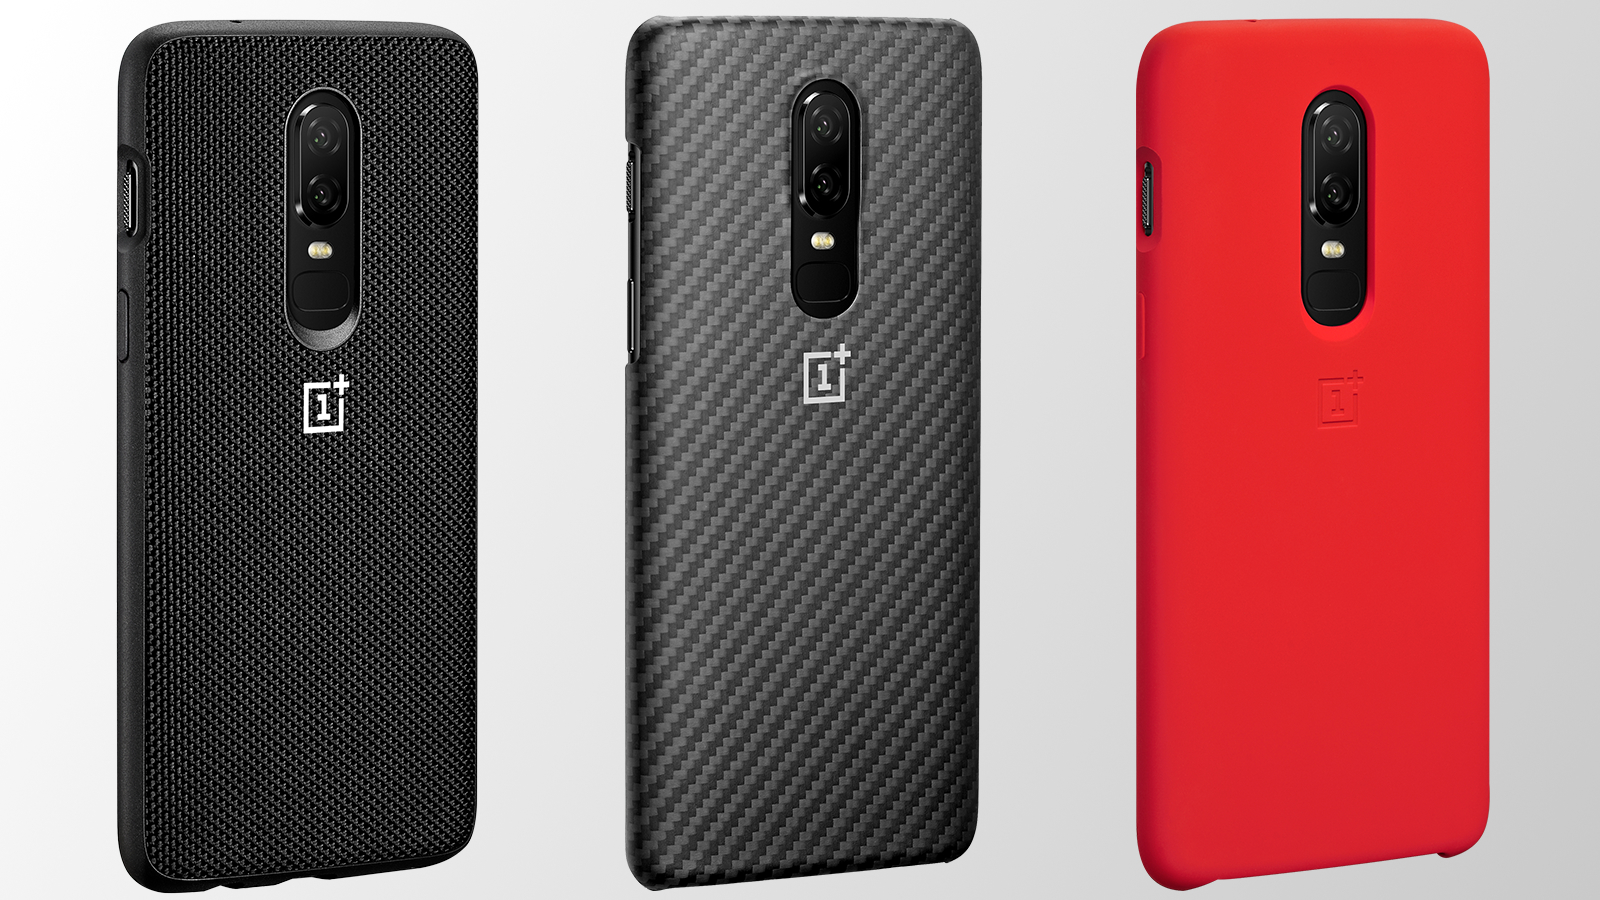 super popular 88029 edf26 Best OnePlus 6 cases to protect your new phone | TechRadar